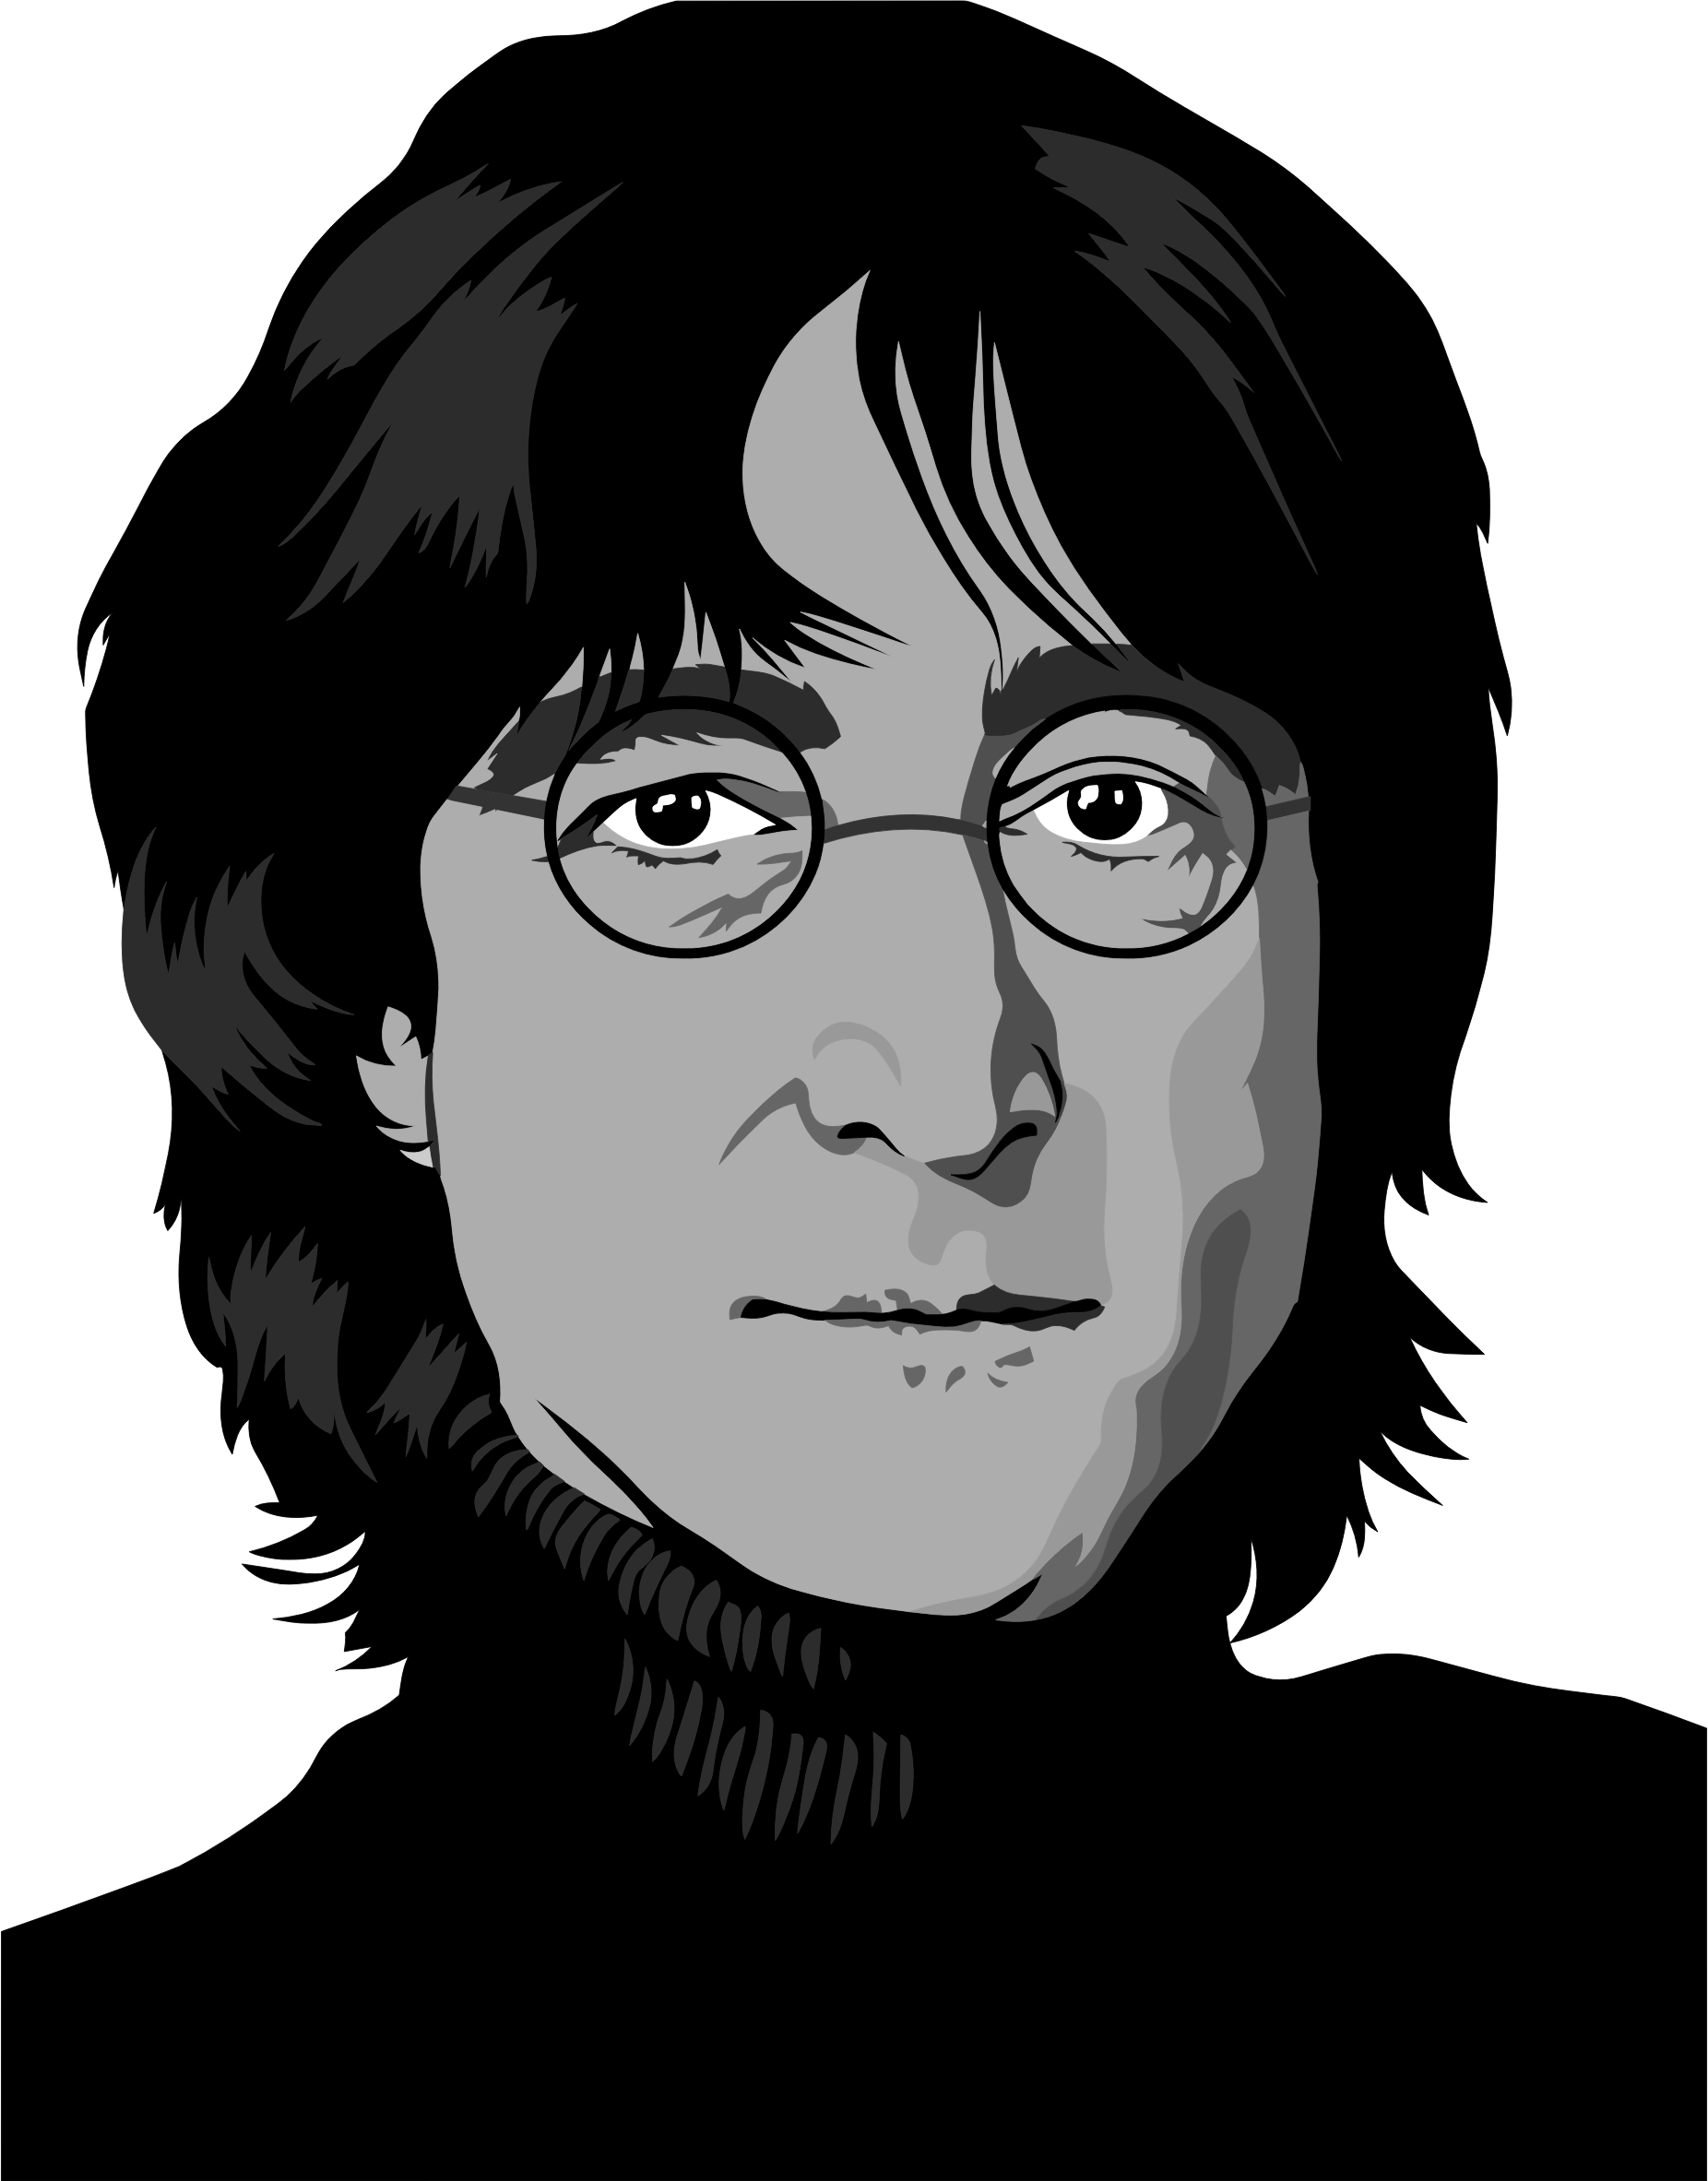 John Lennon Portrait by GDJ